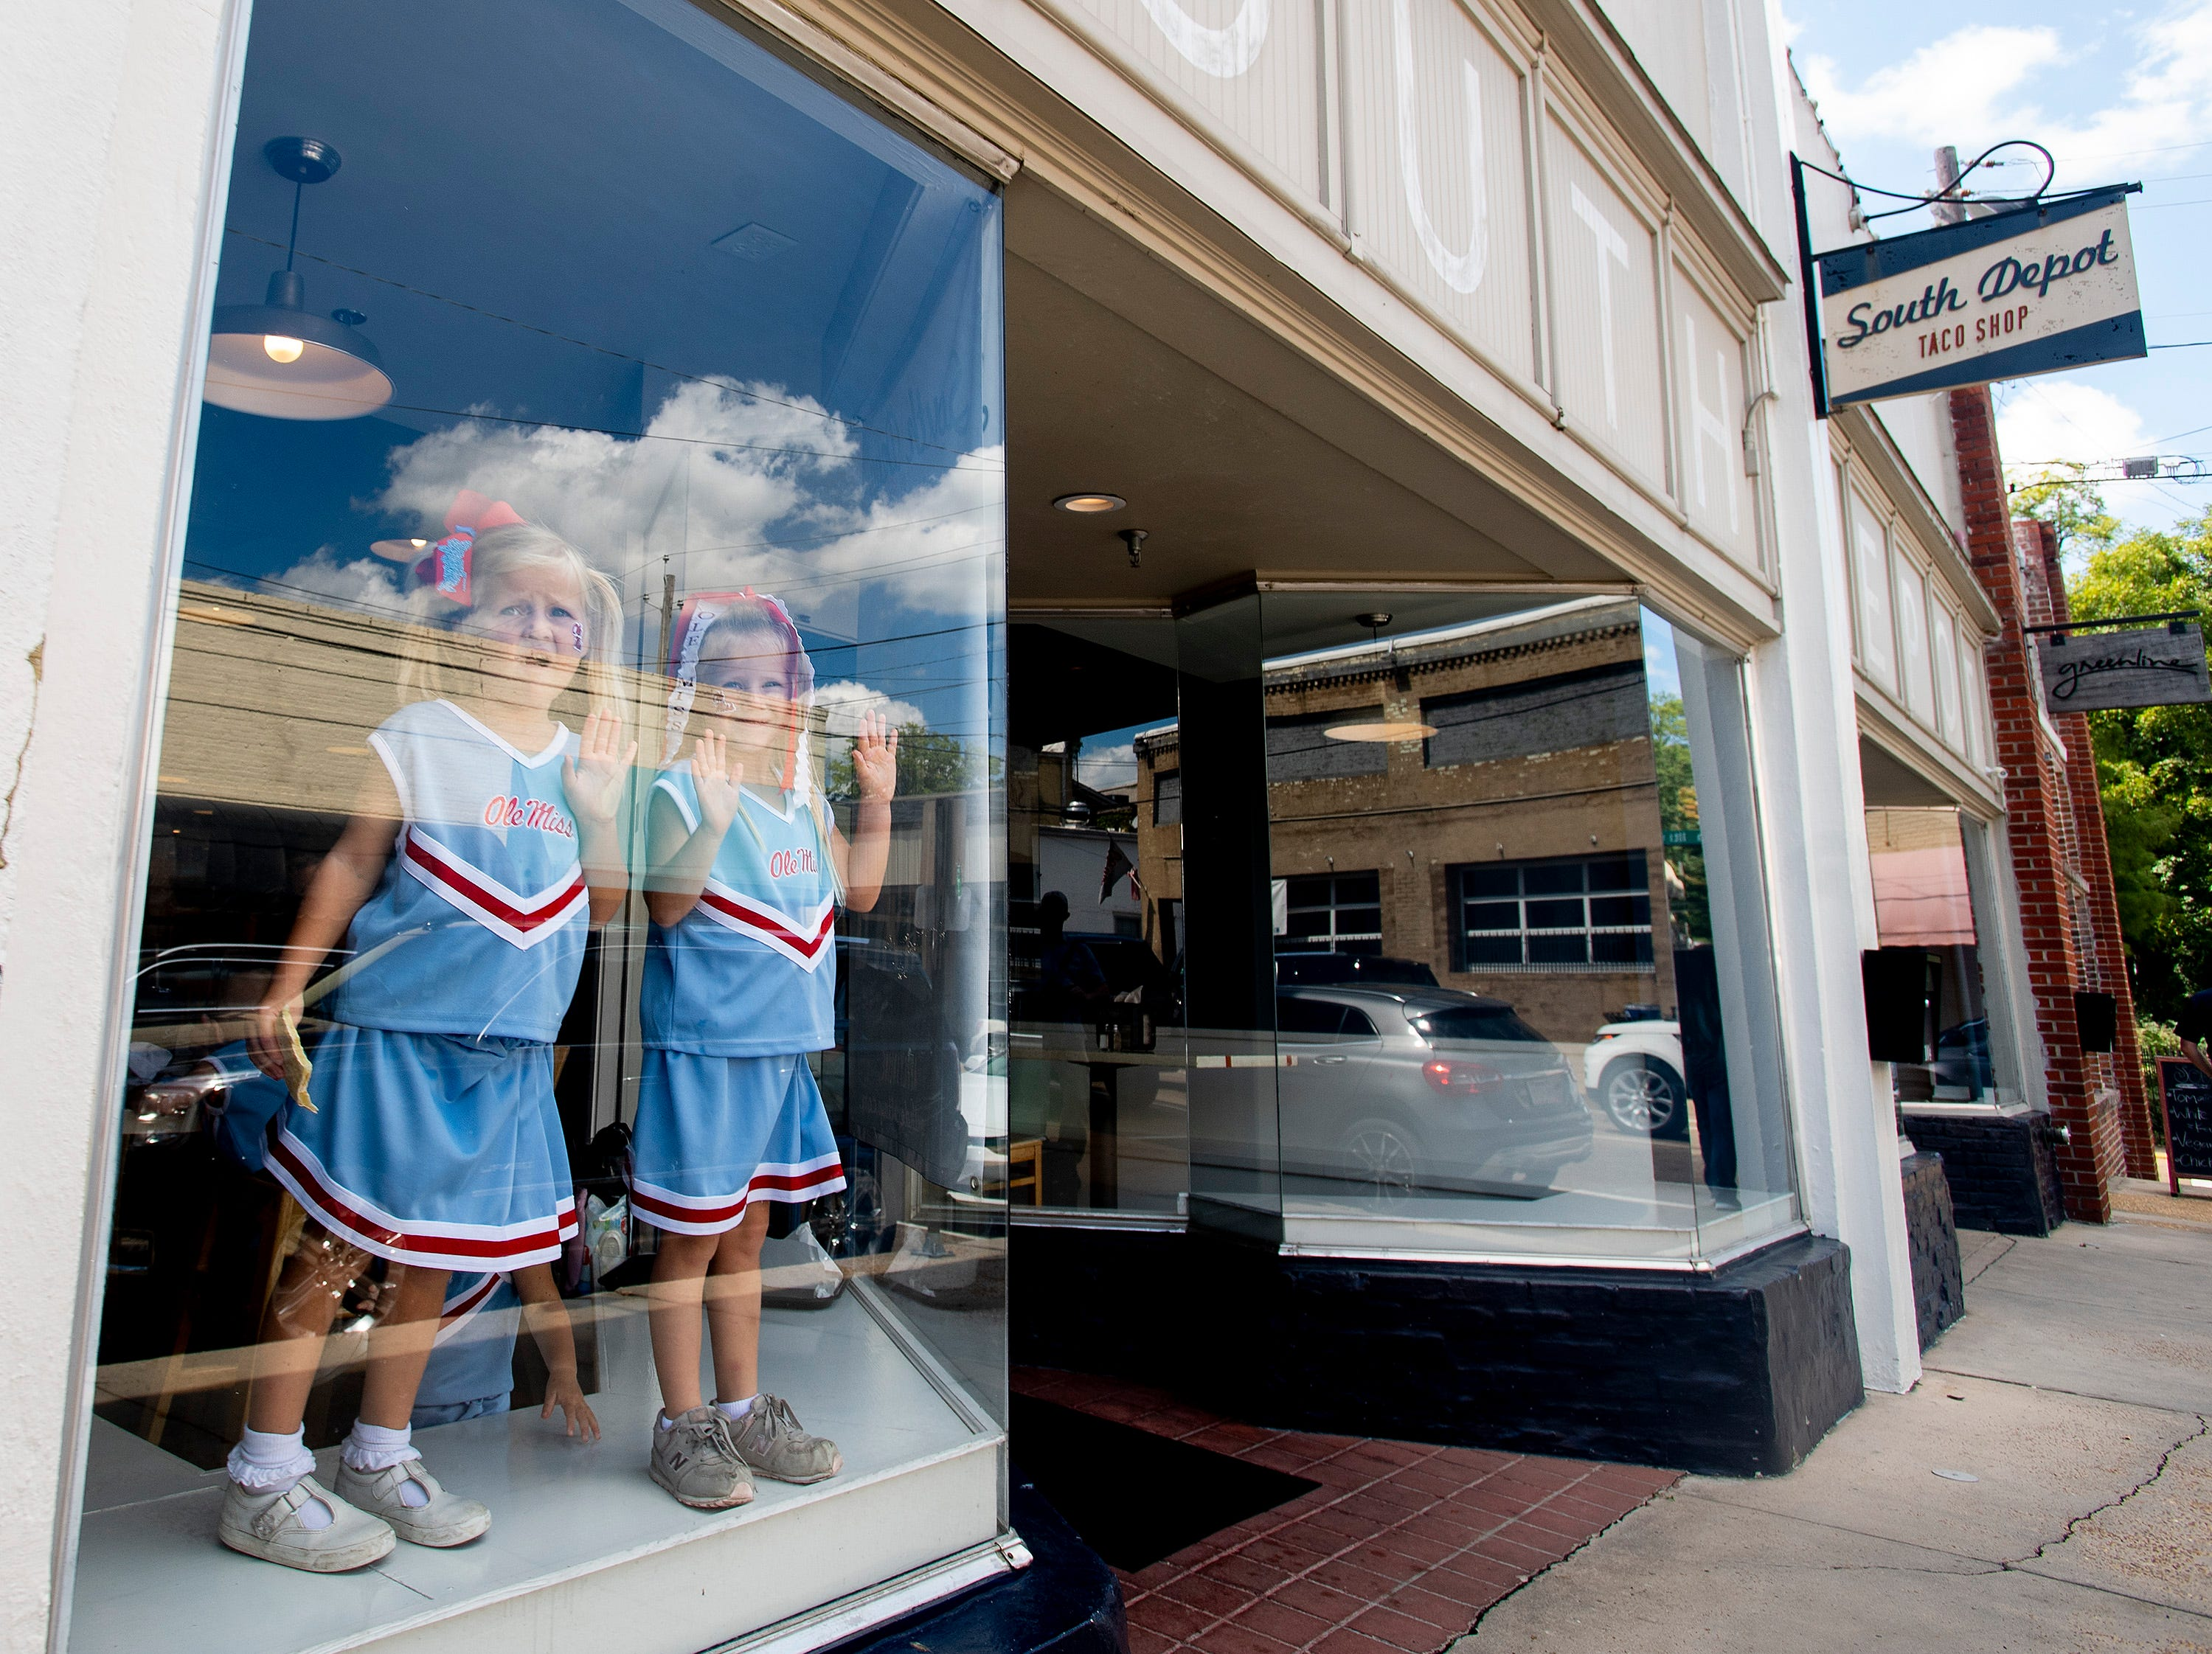 Young Ole Miss fans dressed as cheerleaders stand in a restaurant window in Oxford, Ms., before the Ole Miss vs. Alabama game on Saturday September 15, 2018.